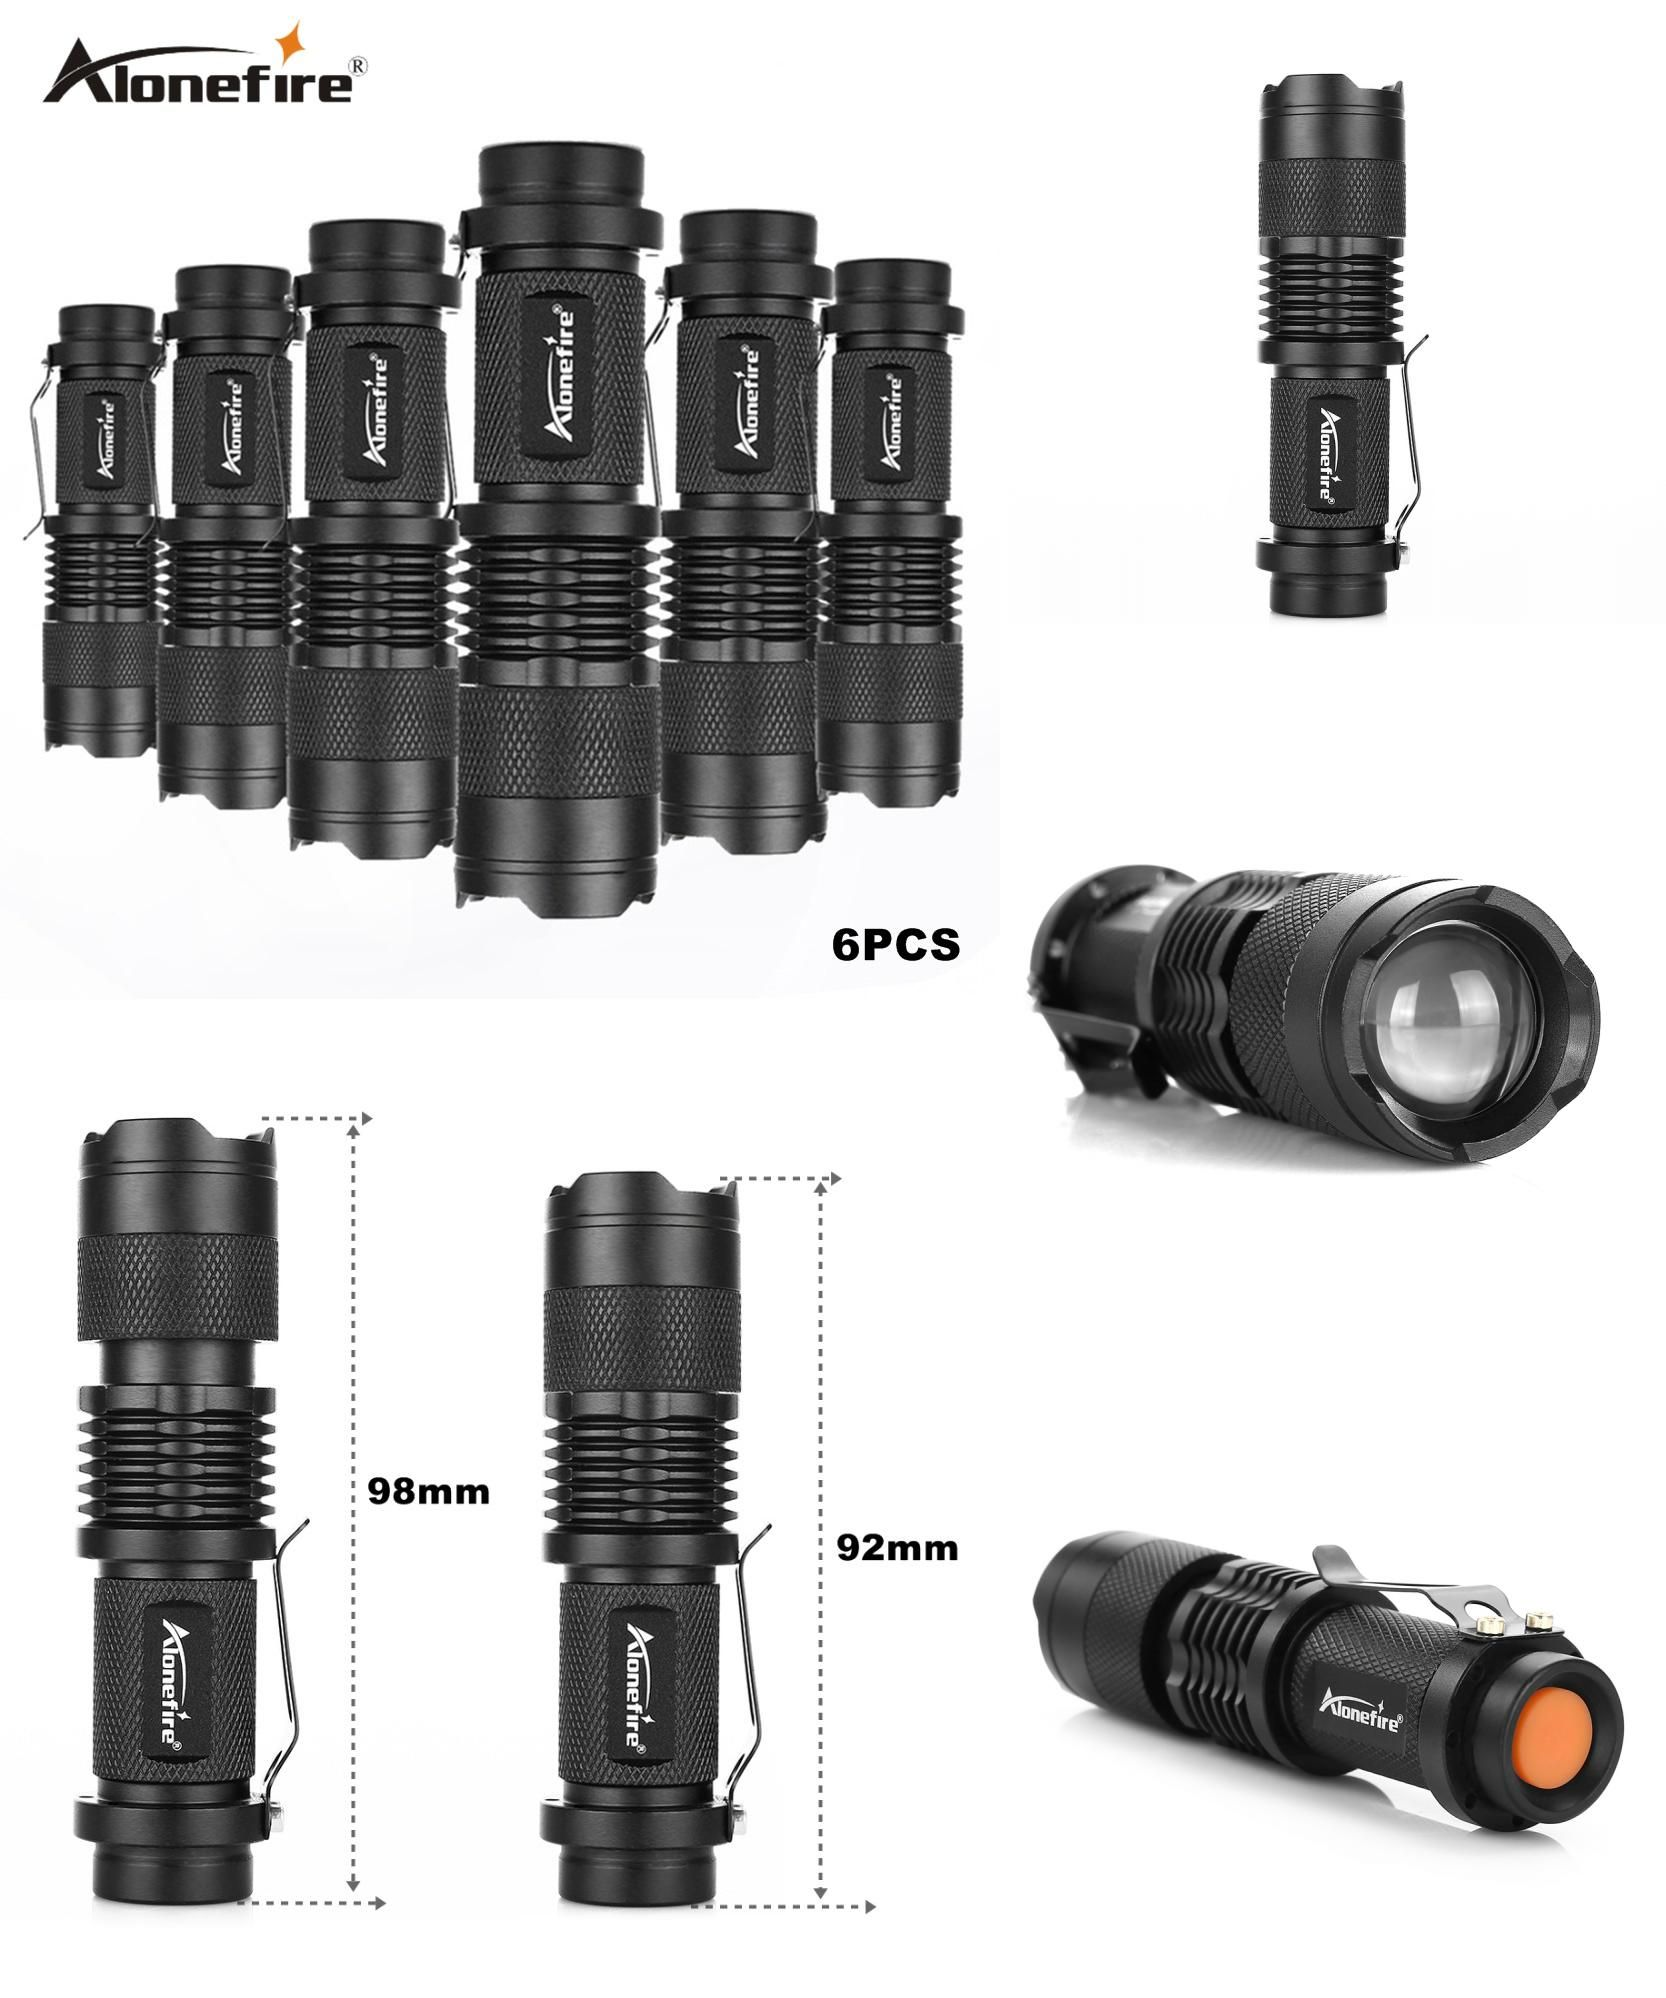 Visit To Buy Alonefrie Mini Led Torch 7w 1200lm Cree Xpe Q5 Led Flashlight Adjustable Focus Zoom Flash Light Camping Night Light Flashlight Tactical Torches